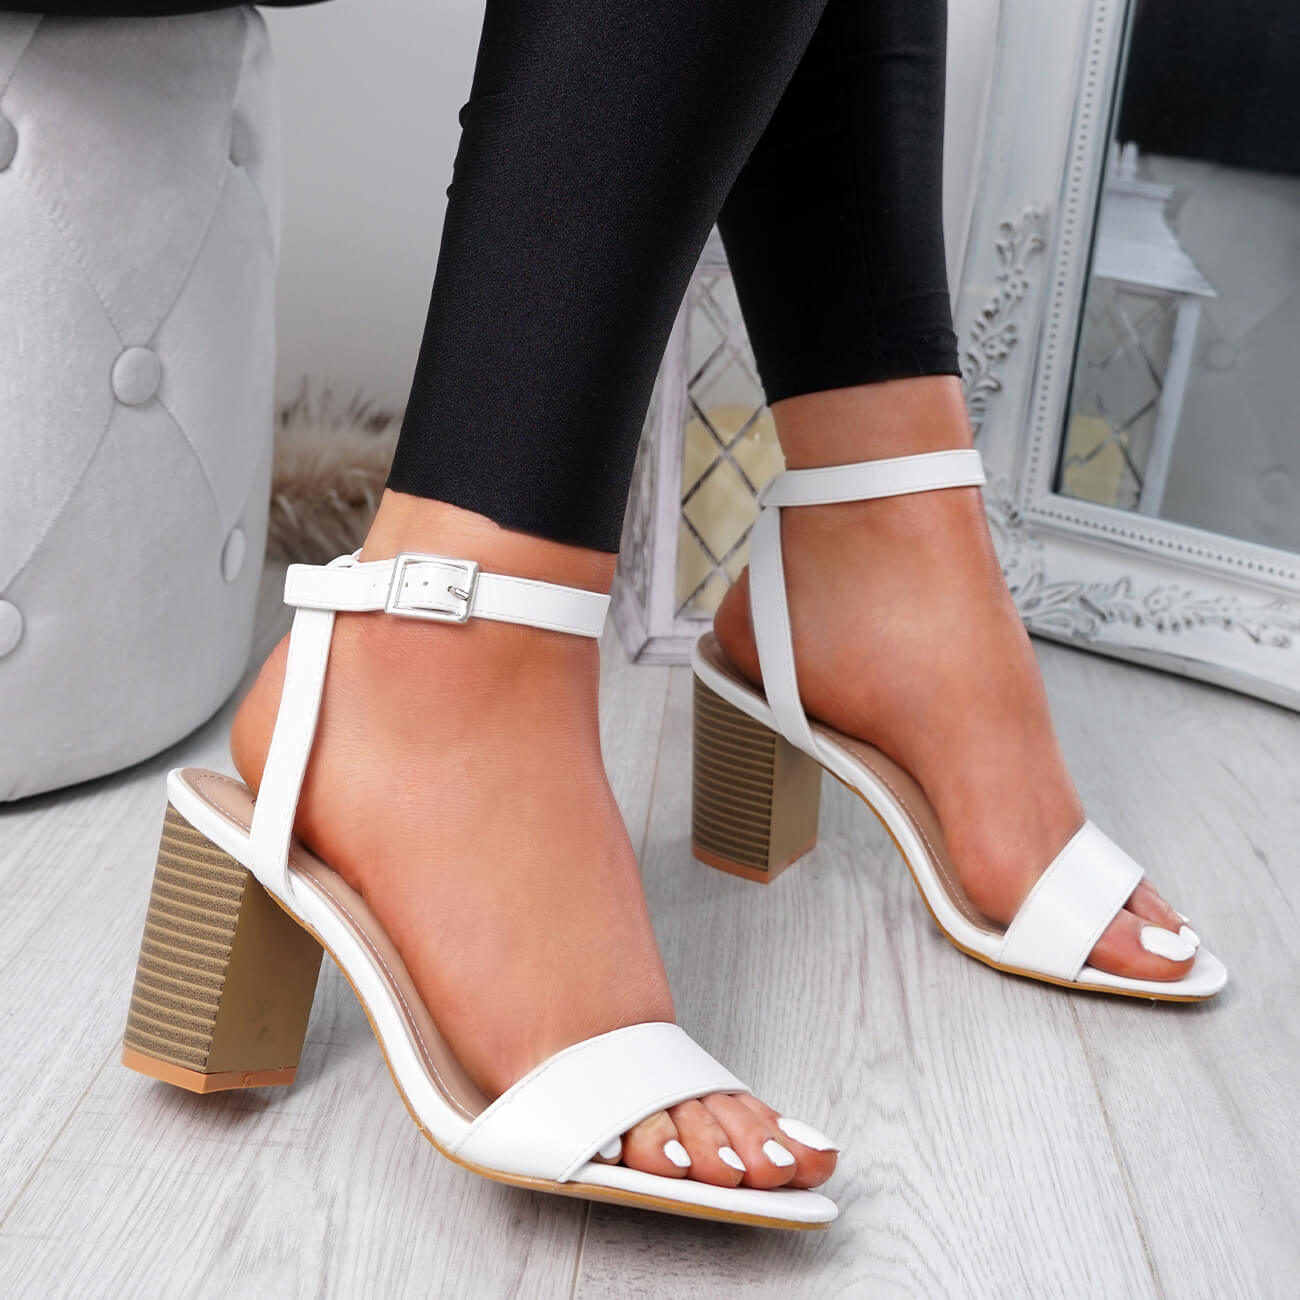 WOMENS-LADIES-PEEP-TOE-HIGH-BLOCK-HEEL-SANDALS-ANKLE-STRAP-PARTY-SHOES-SIZE thumbnail 19